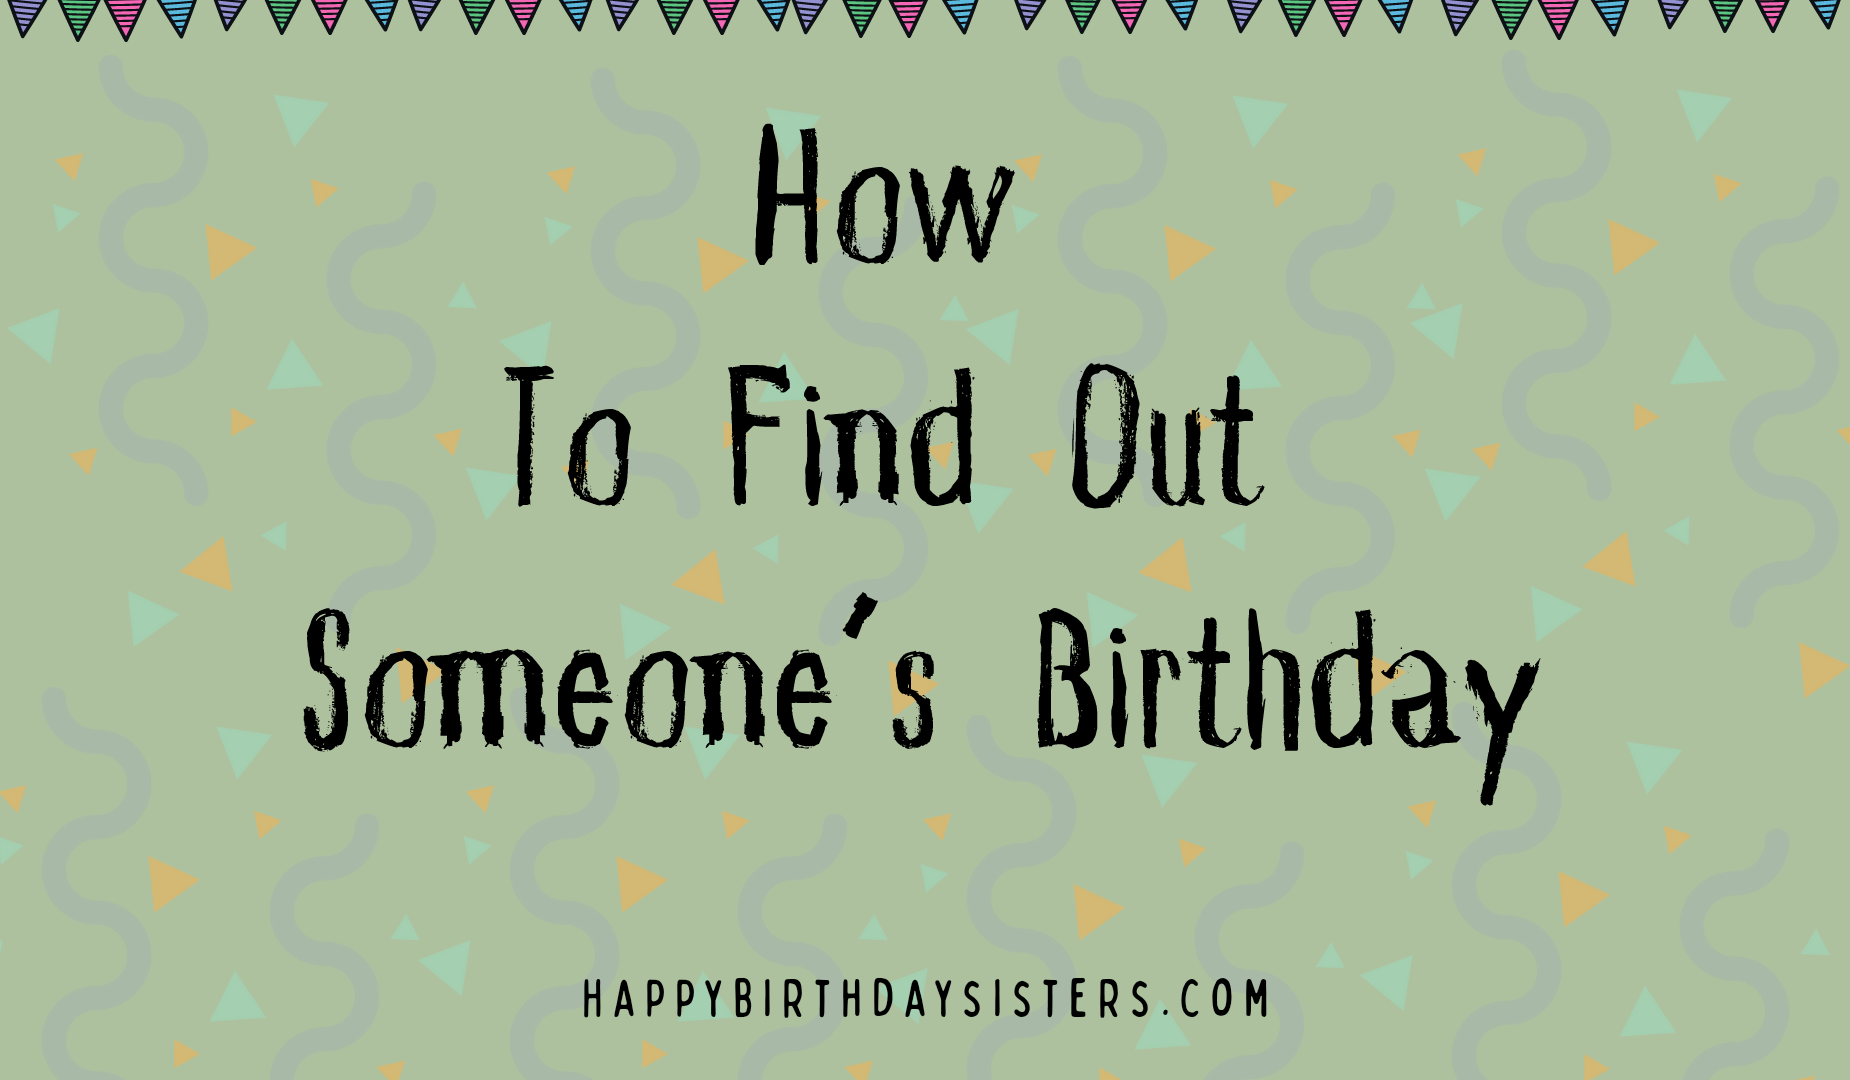 How To Find Out Someone's Birthday